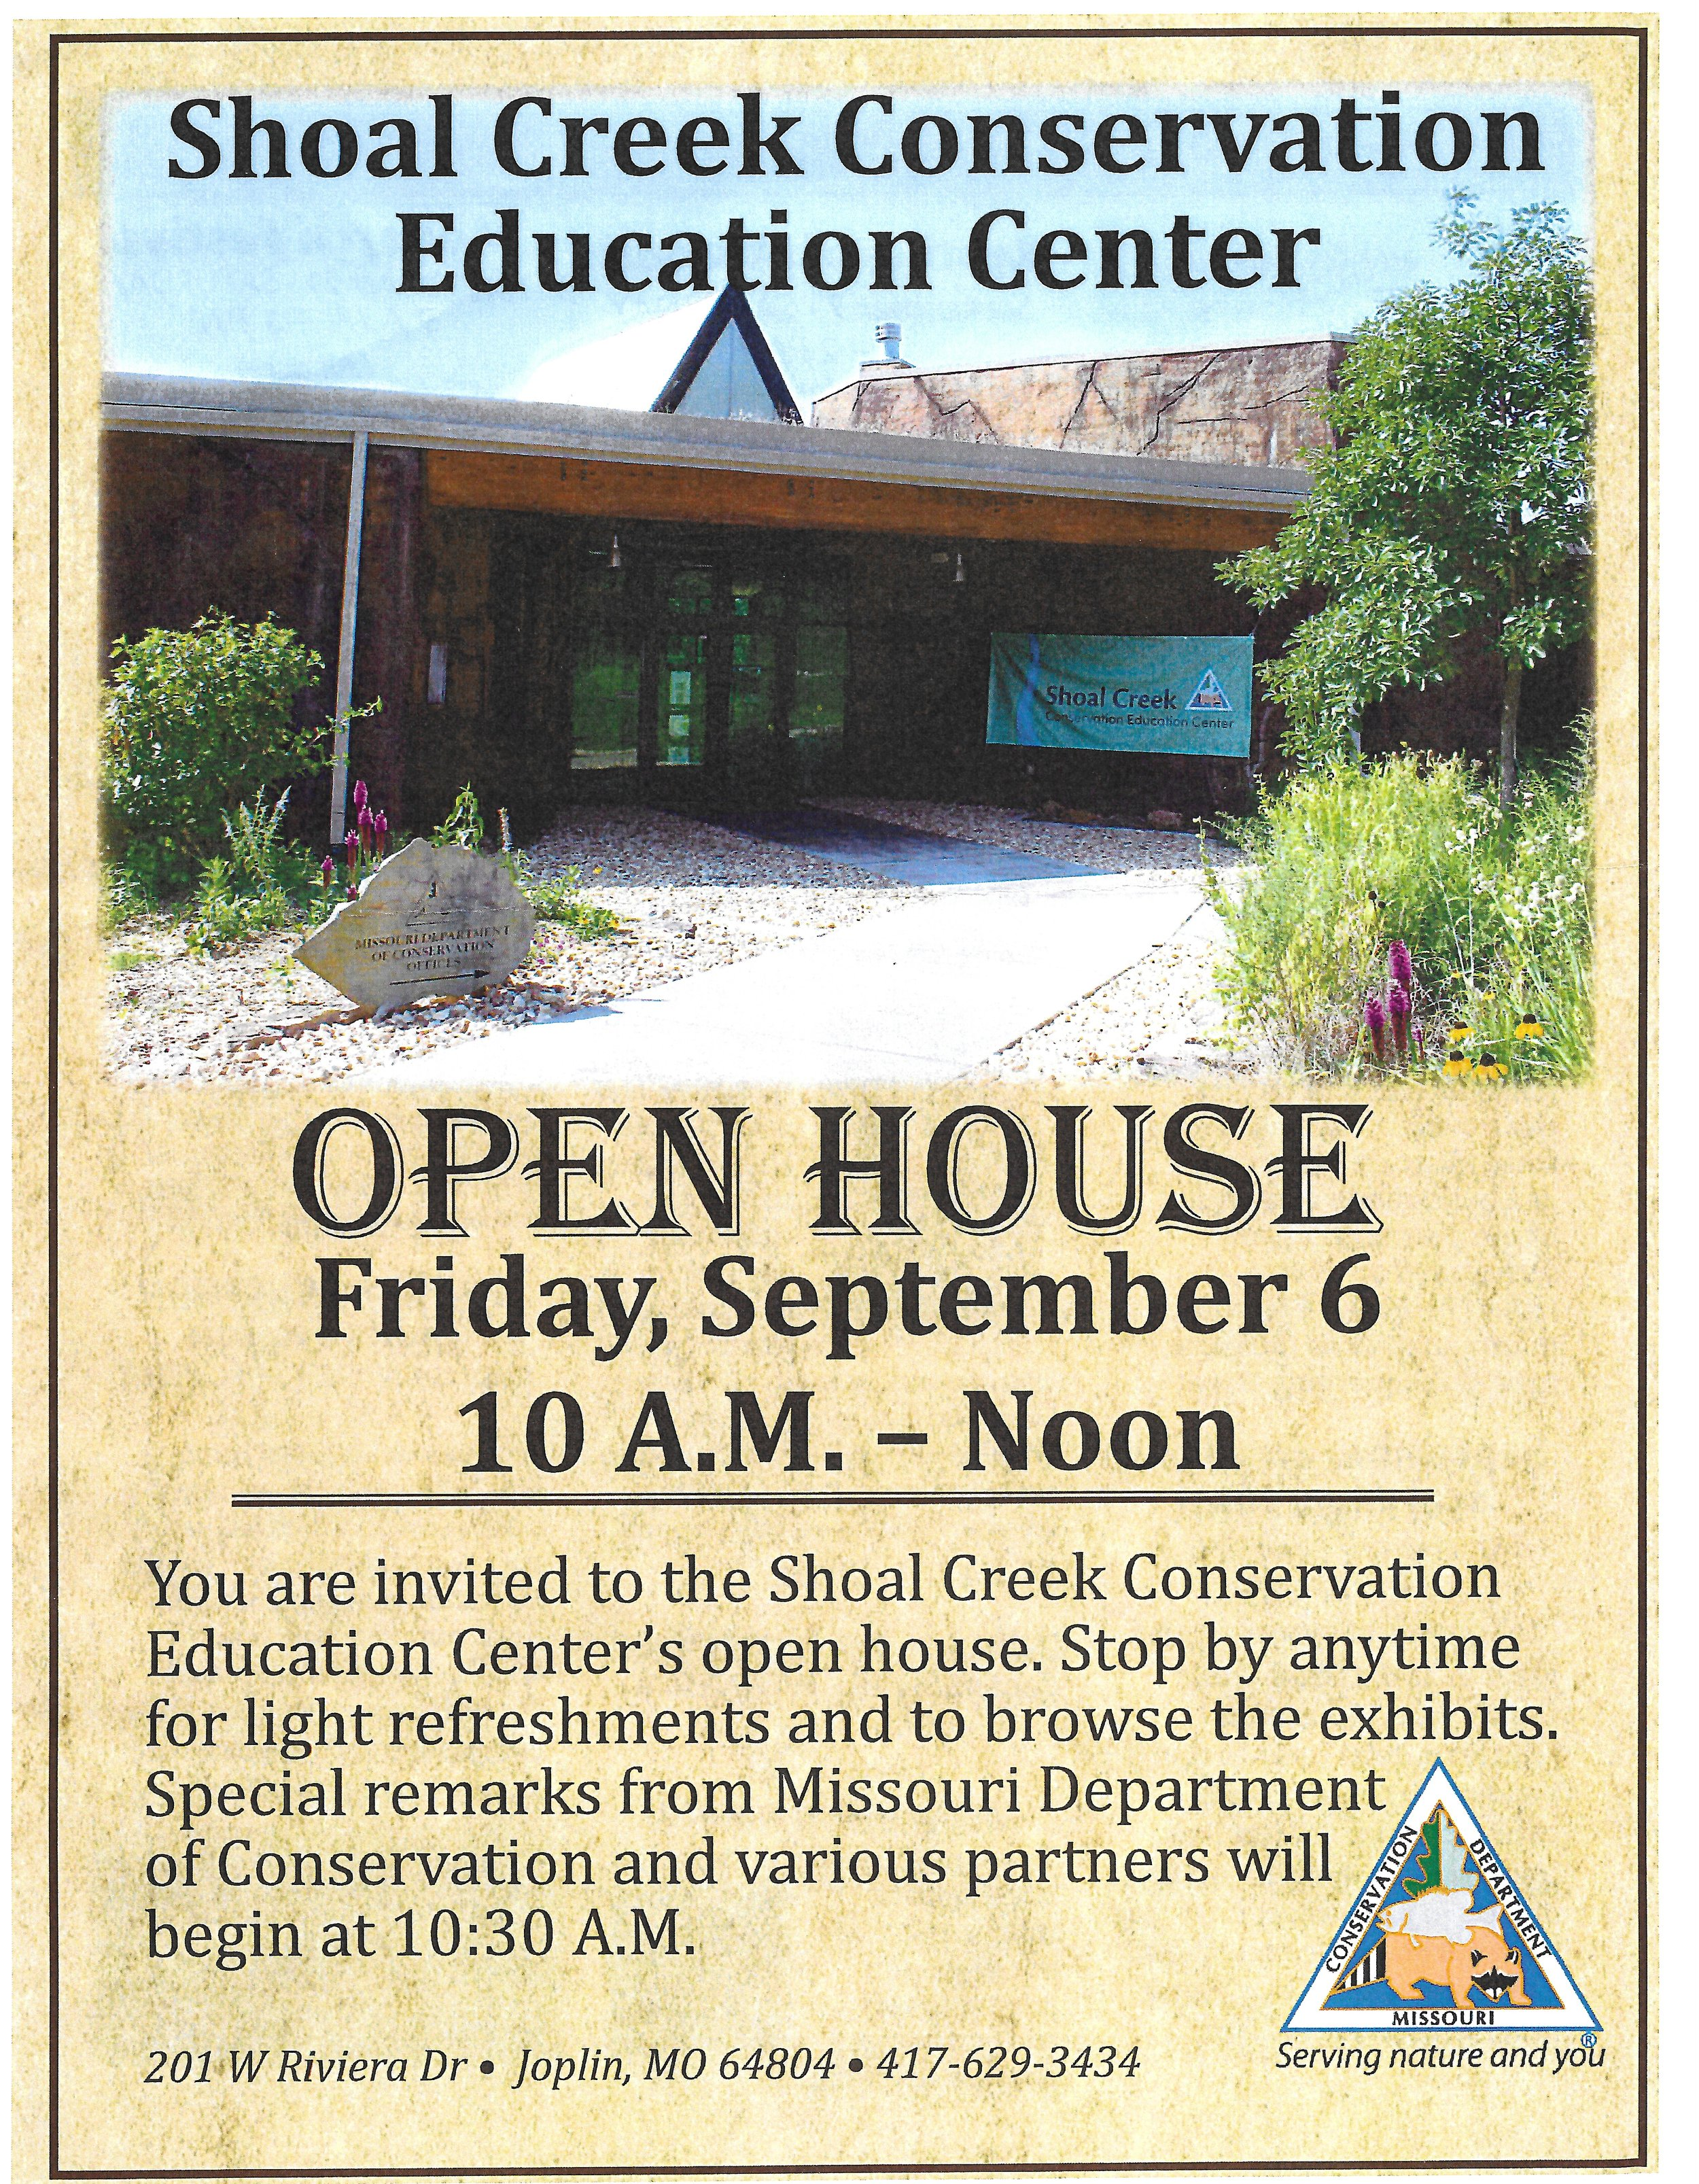 """""""The MDC team has worked hard getting this facility ready for re-opening and we hope the community will be pleased with all the indoor and outdoor enhancements of this one-of-a-kind conservation destination."""""""